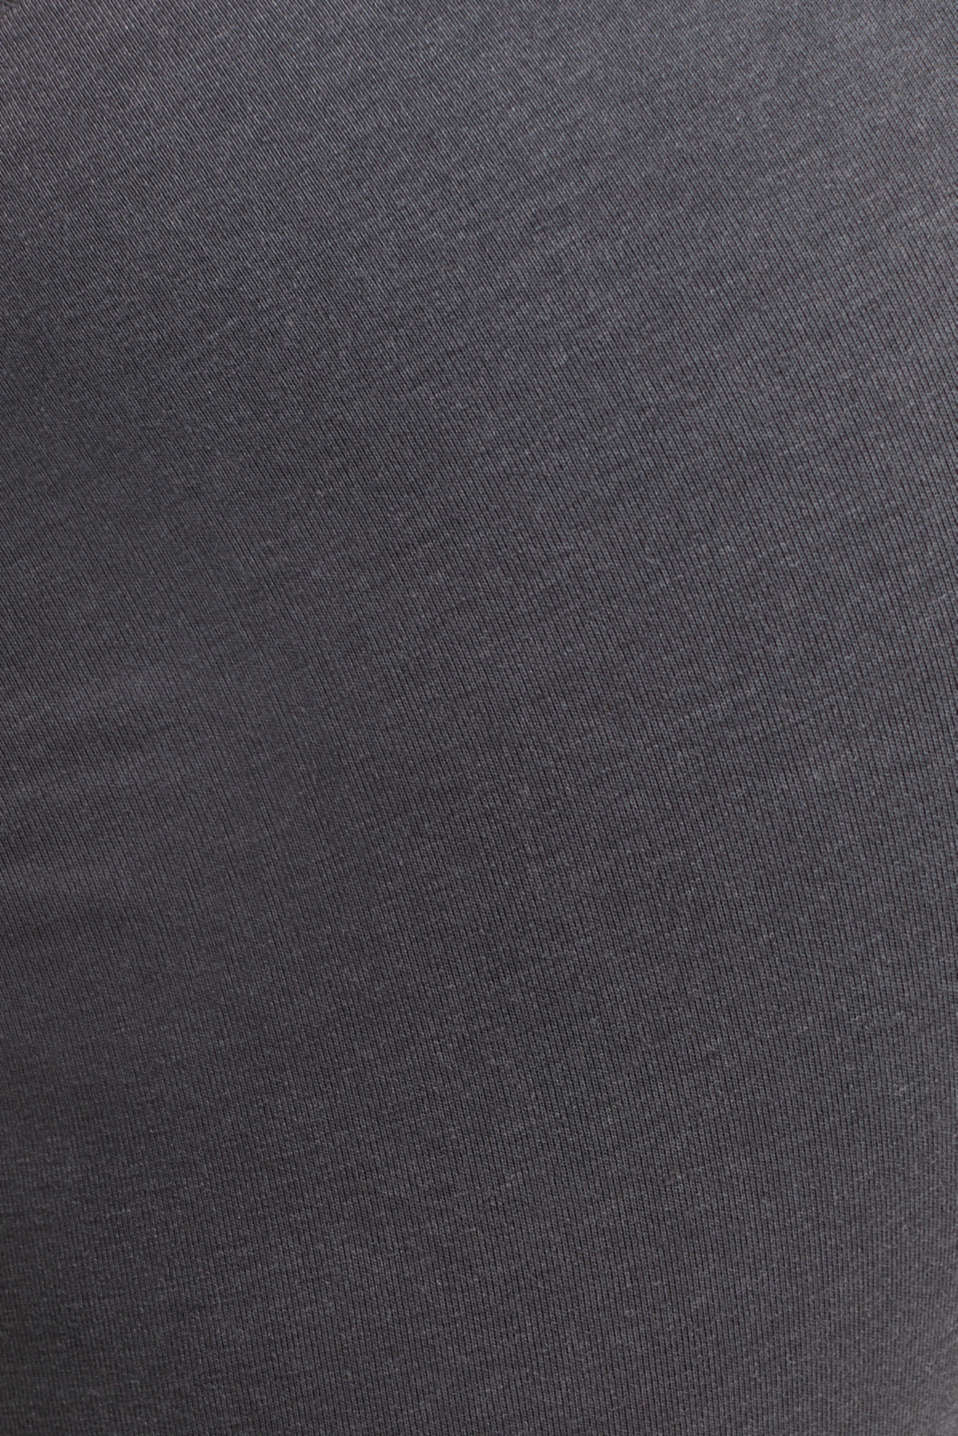 Cropped leggings with a shiny print, DARK GREY 2, detail image number 3